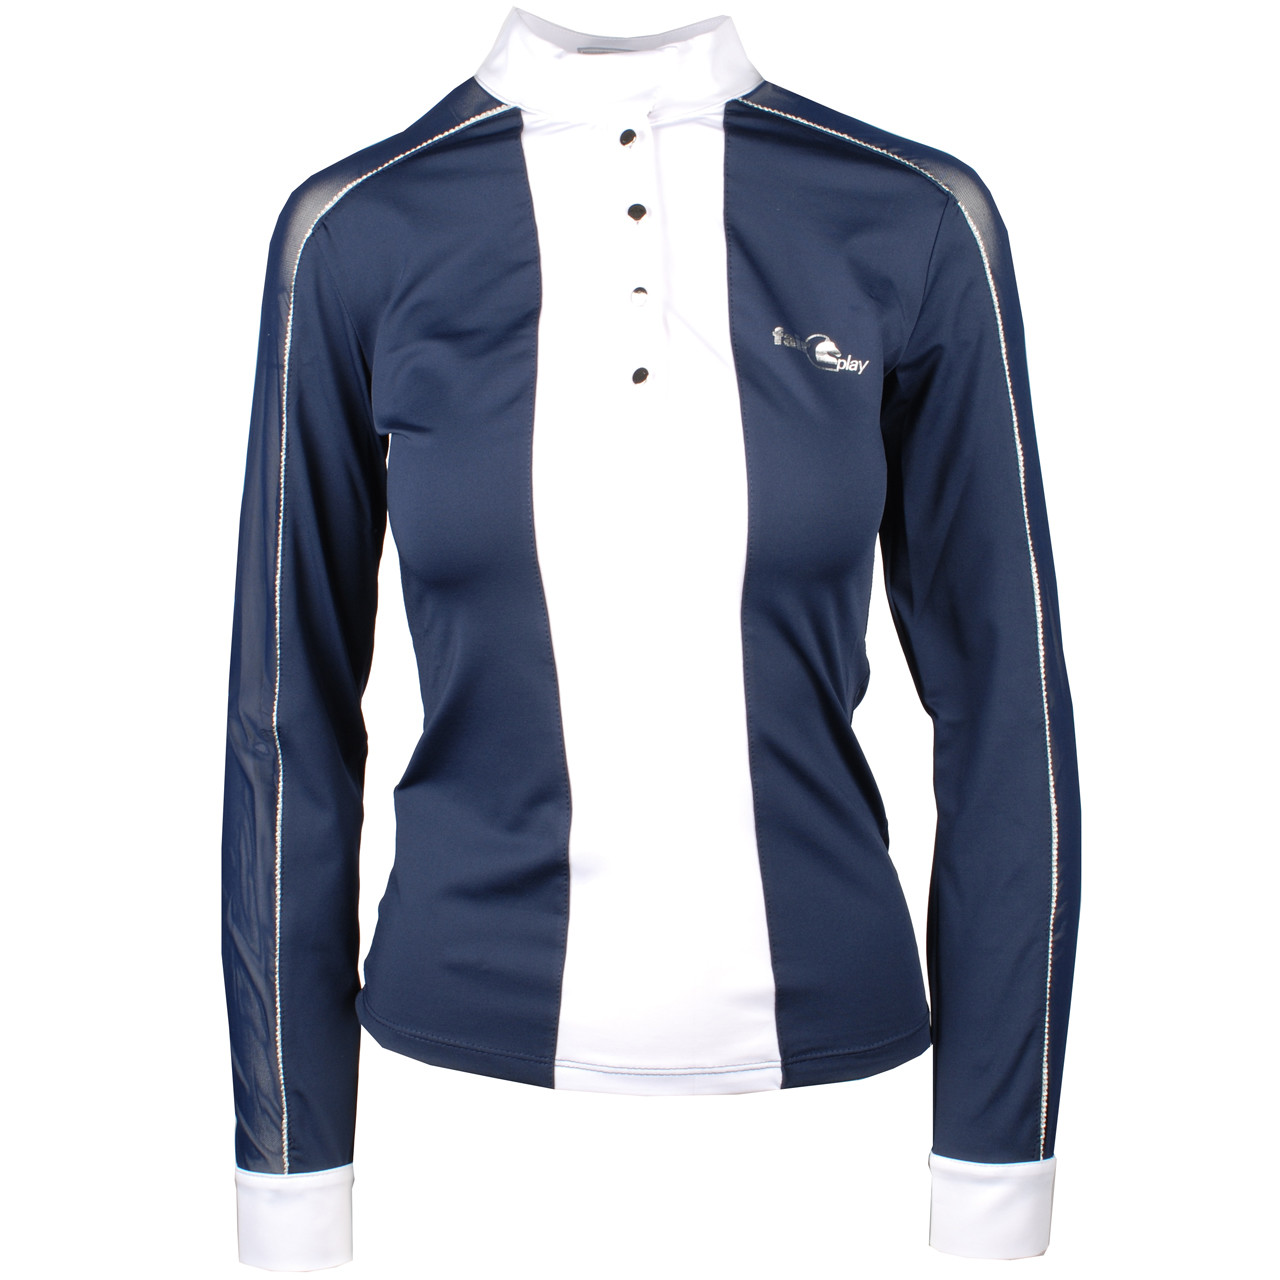 Fair Play Claire lm wedstrijdshirt donkerblauw maat:40